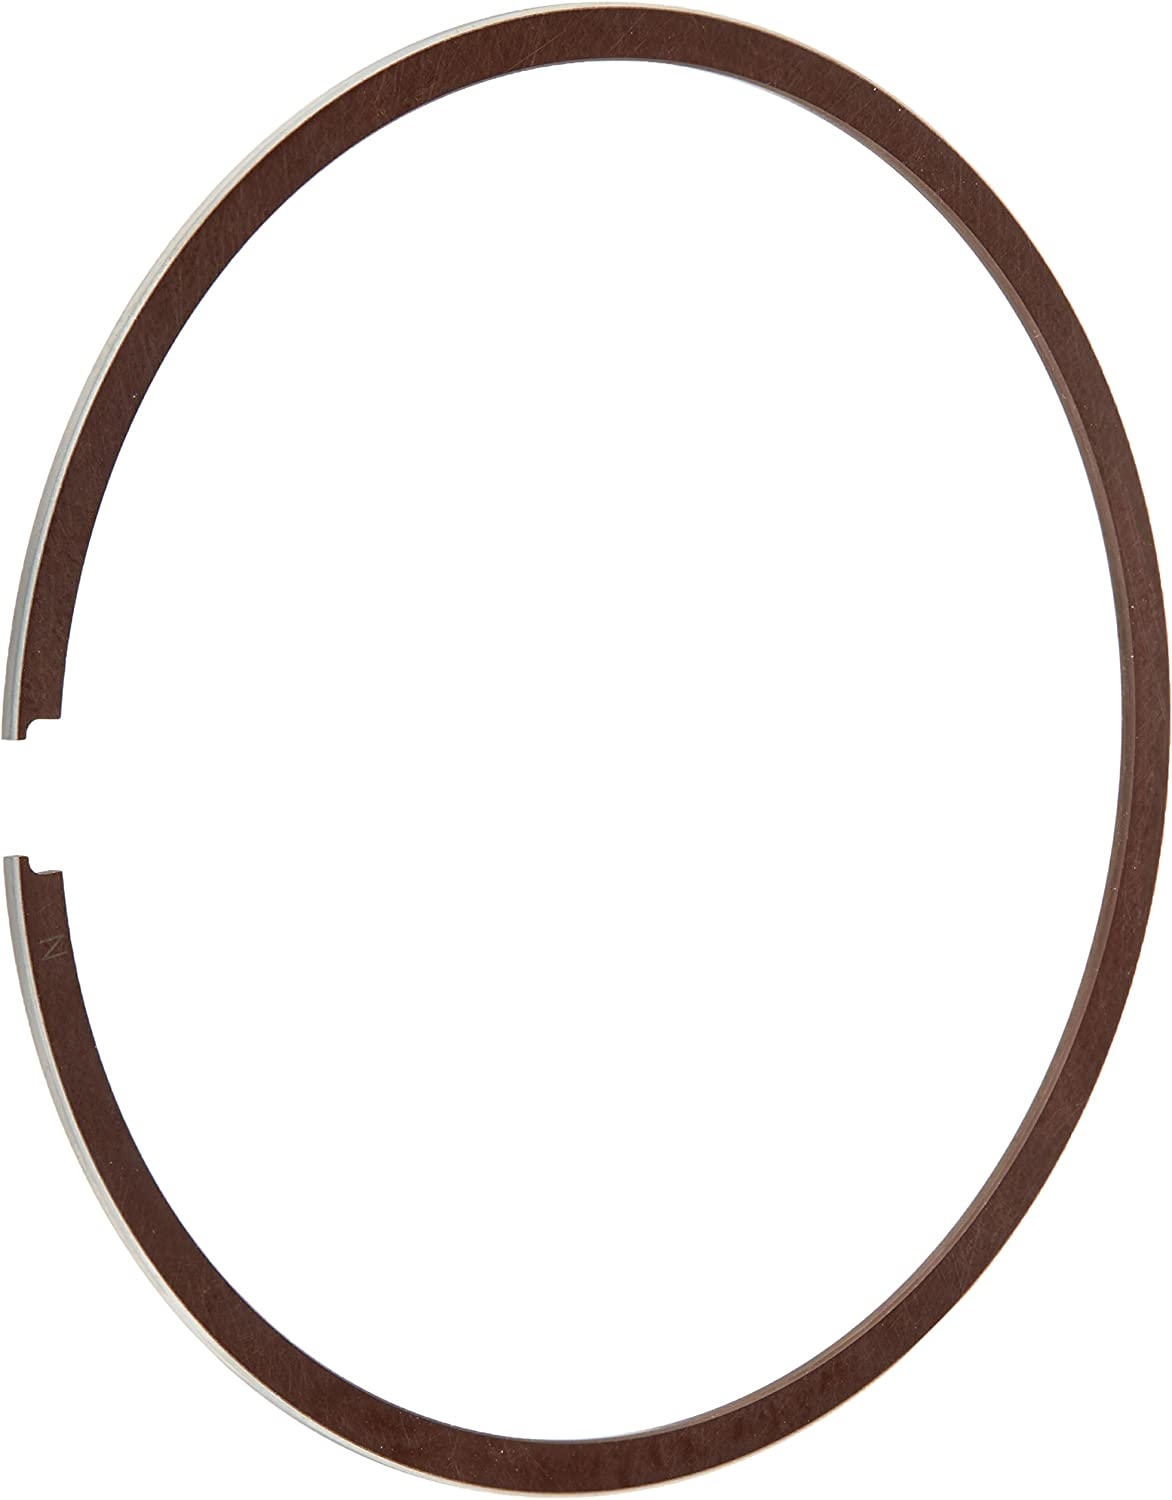 Wiseco 2520CS Single Ring for 64.00mm Cylinder Bore